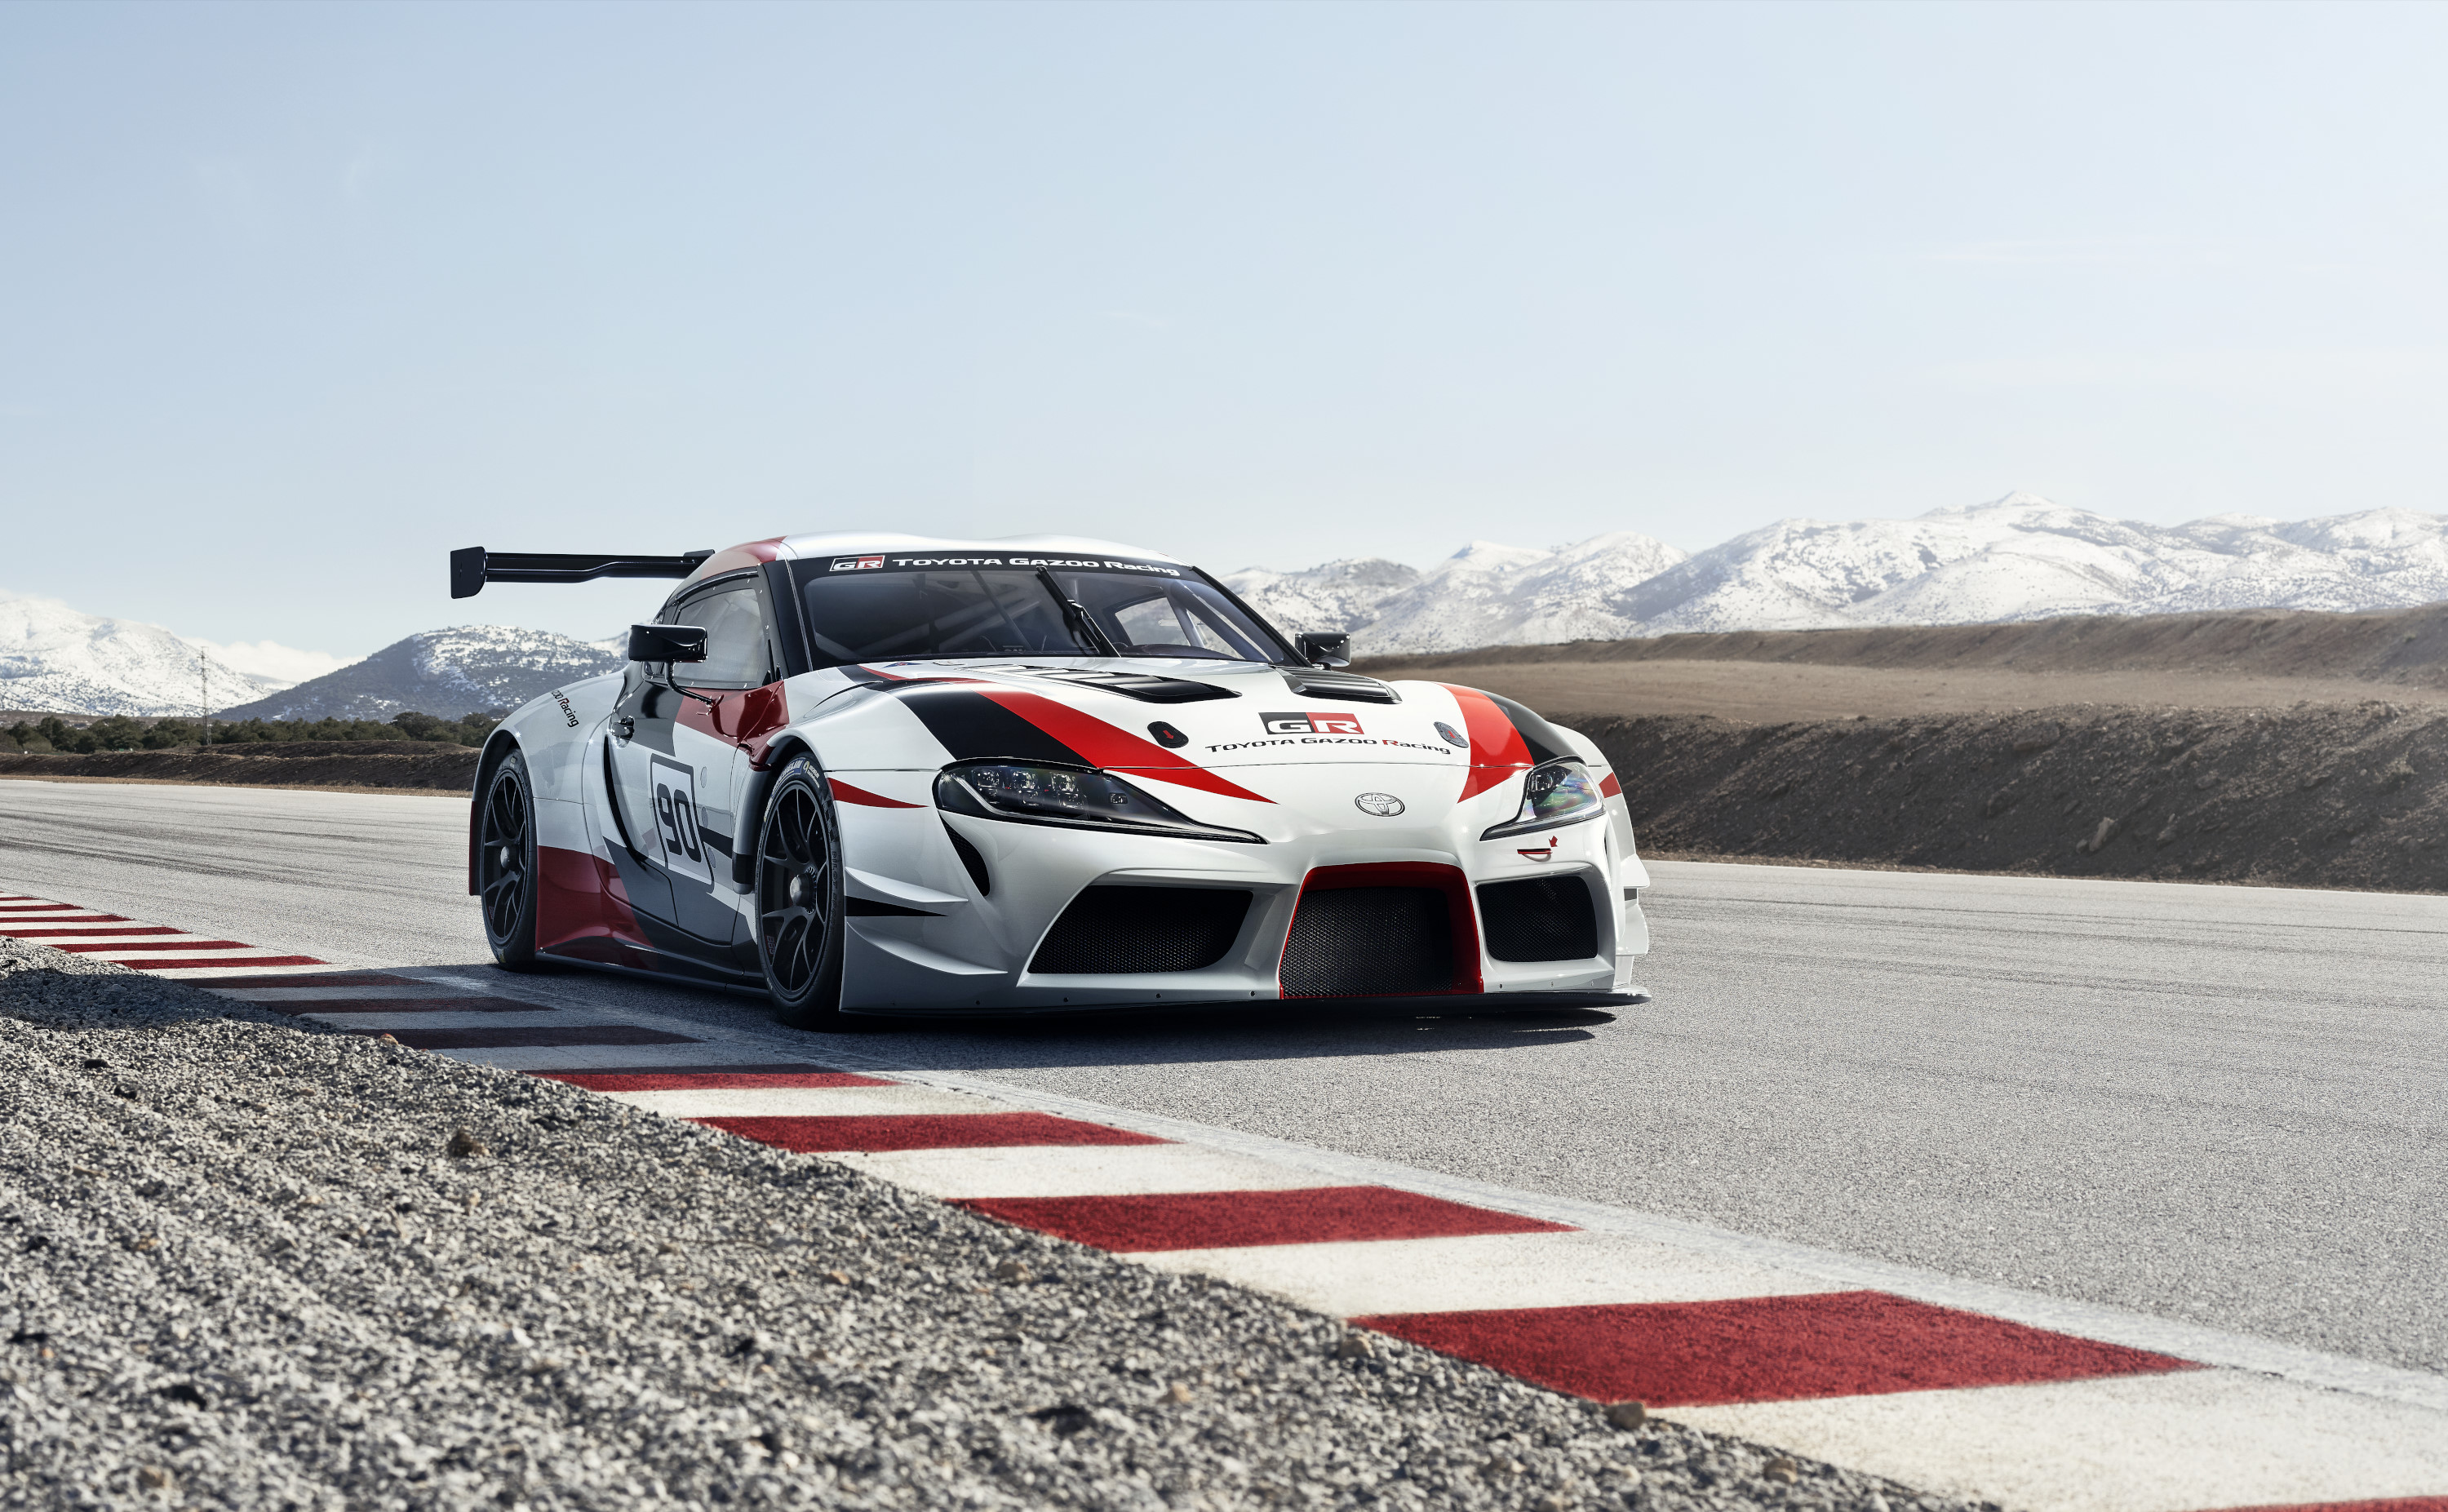 Toyota Supra racing concept on the track